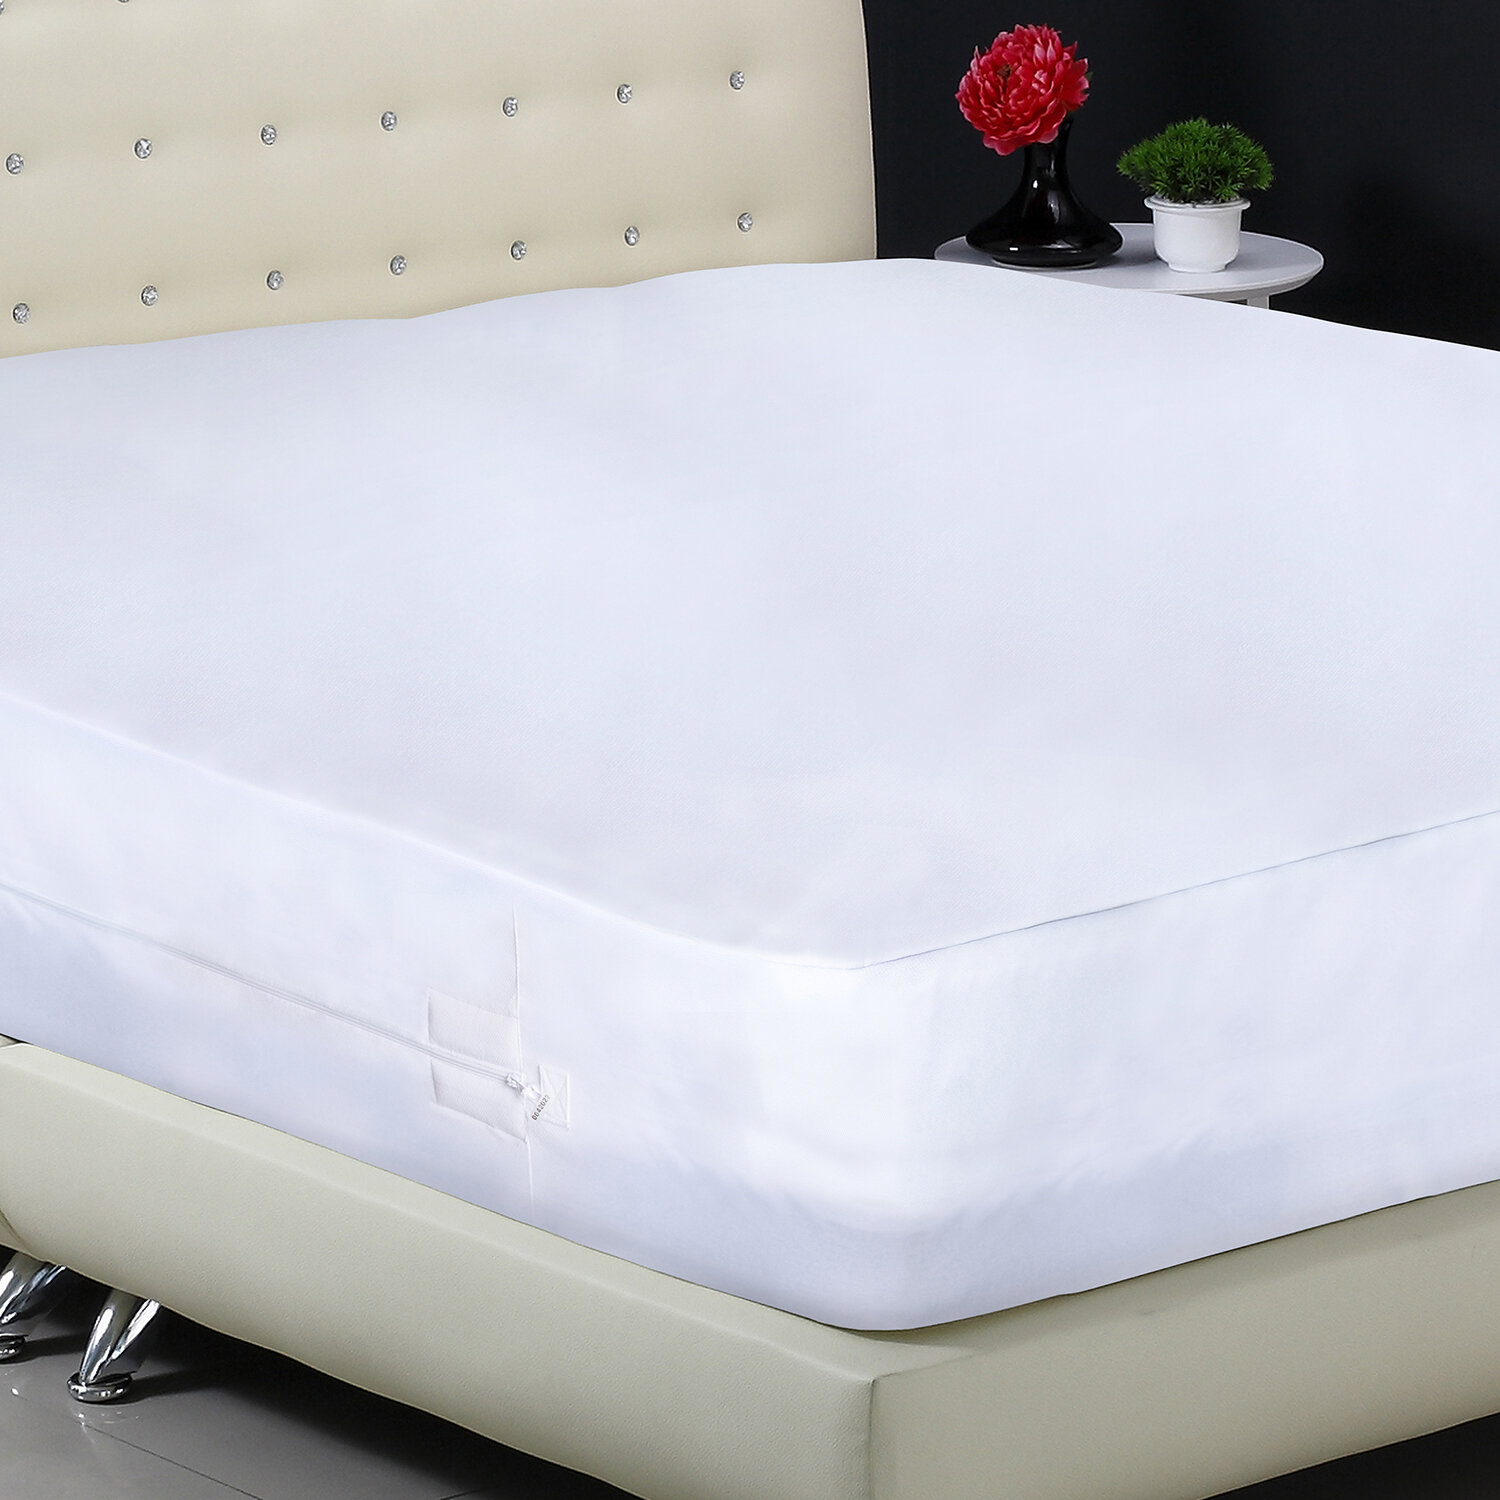 Protect A Bed Aller Zip Smooth Anti Allergy And Bug Proof Hypoallergenic Waterproof Mattress Protector Reviews Wayfair